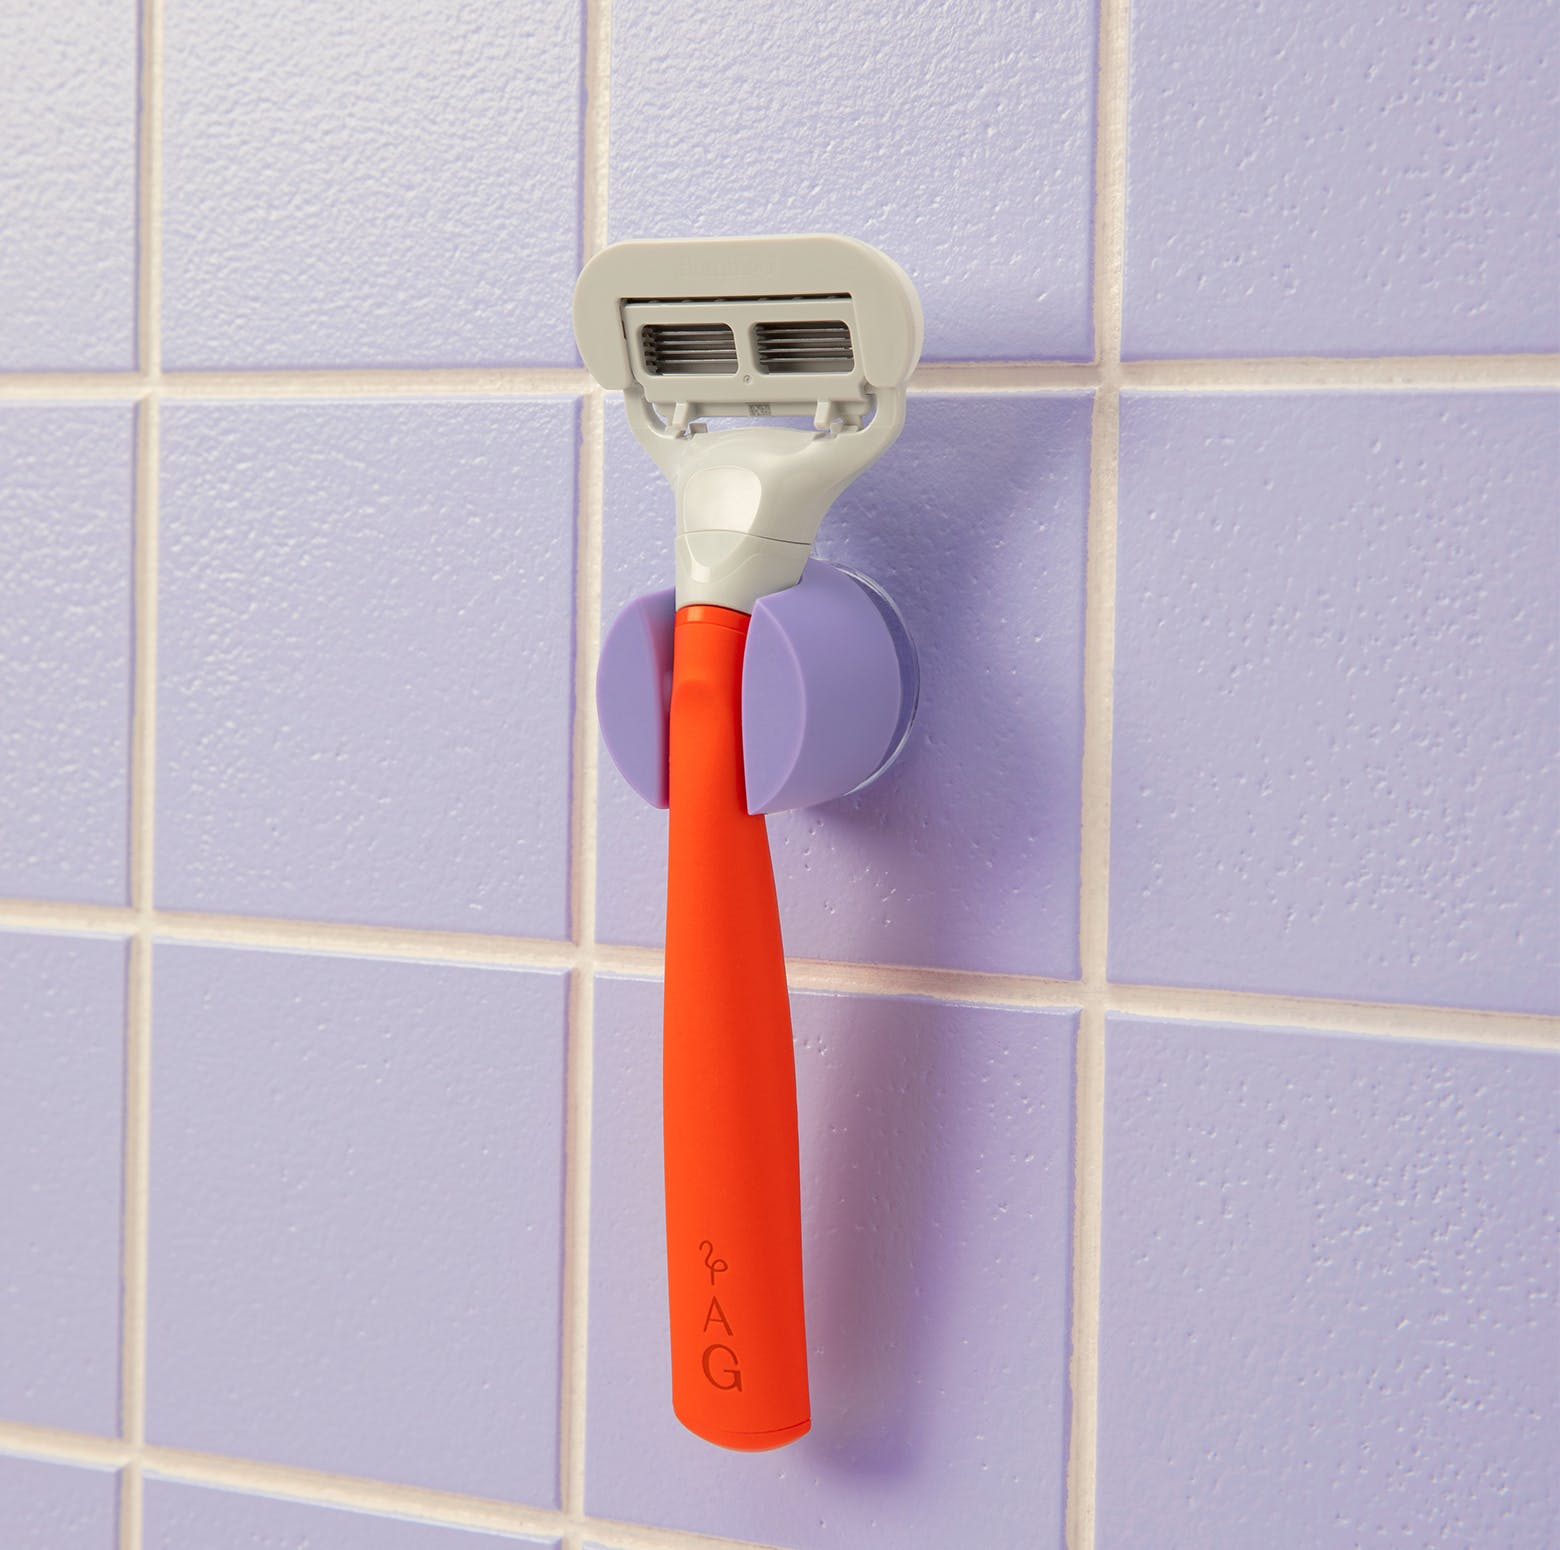 Razor hanging on a shower hook in the shower